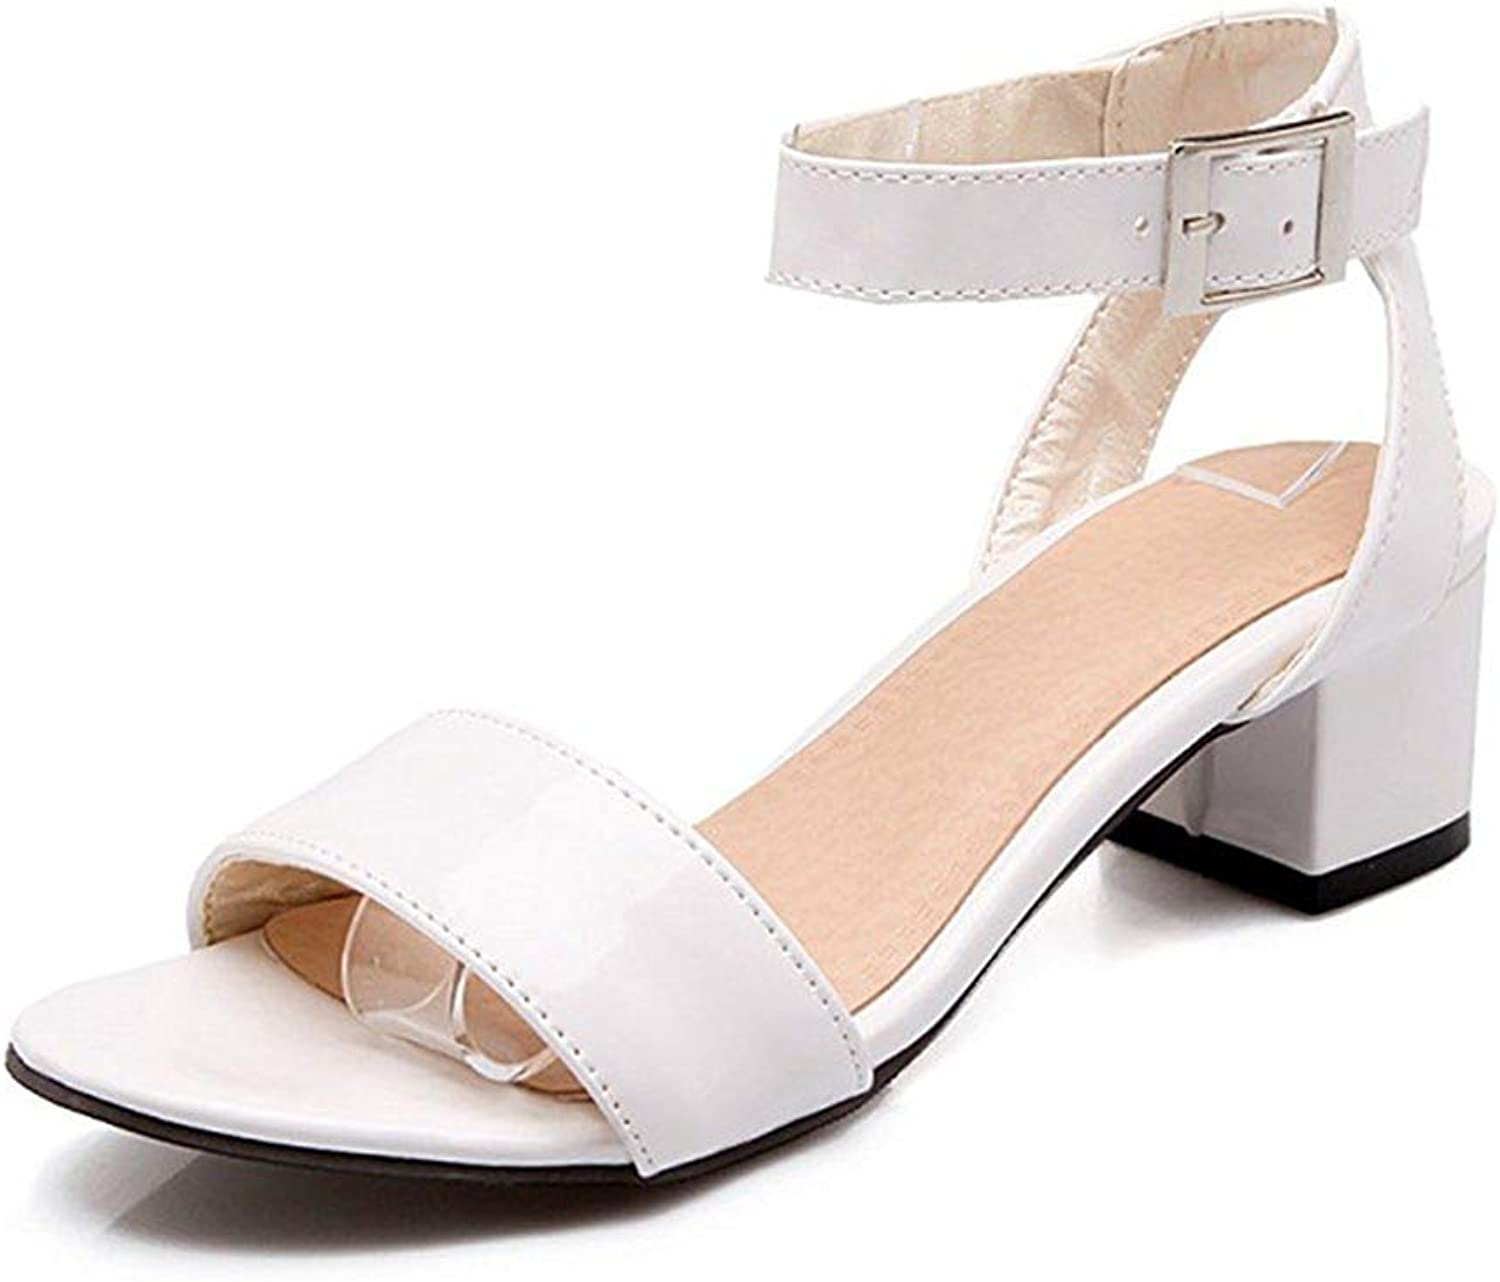 Unm Women's Simple Buckled Open Toe Dress Medium Chunky Heels Ankle Strap Sandals shoes